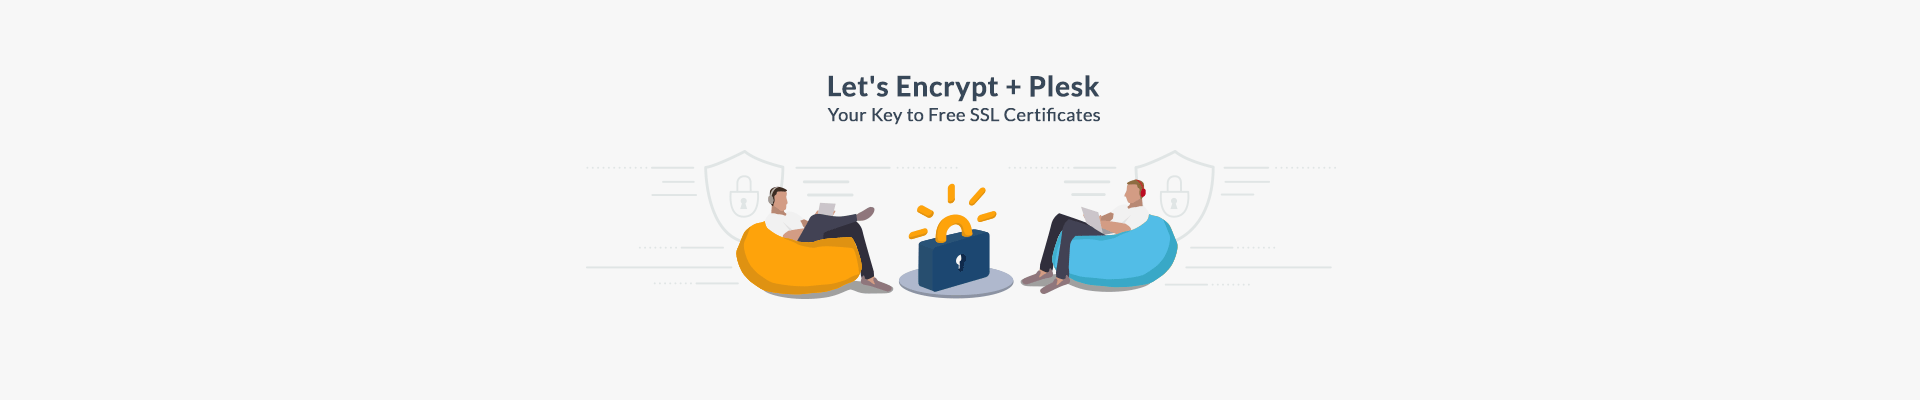 Let's Encrypt on Plesk: Your key to a free SSL certificate